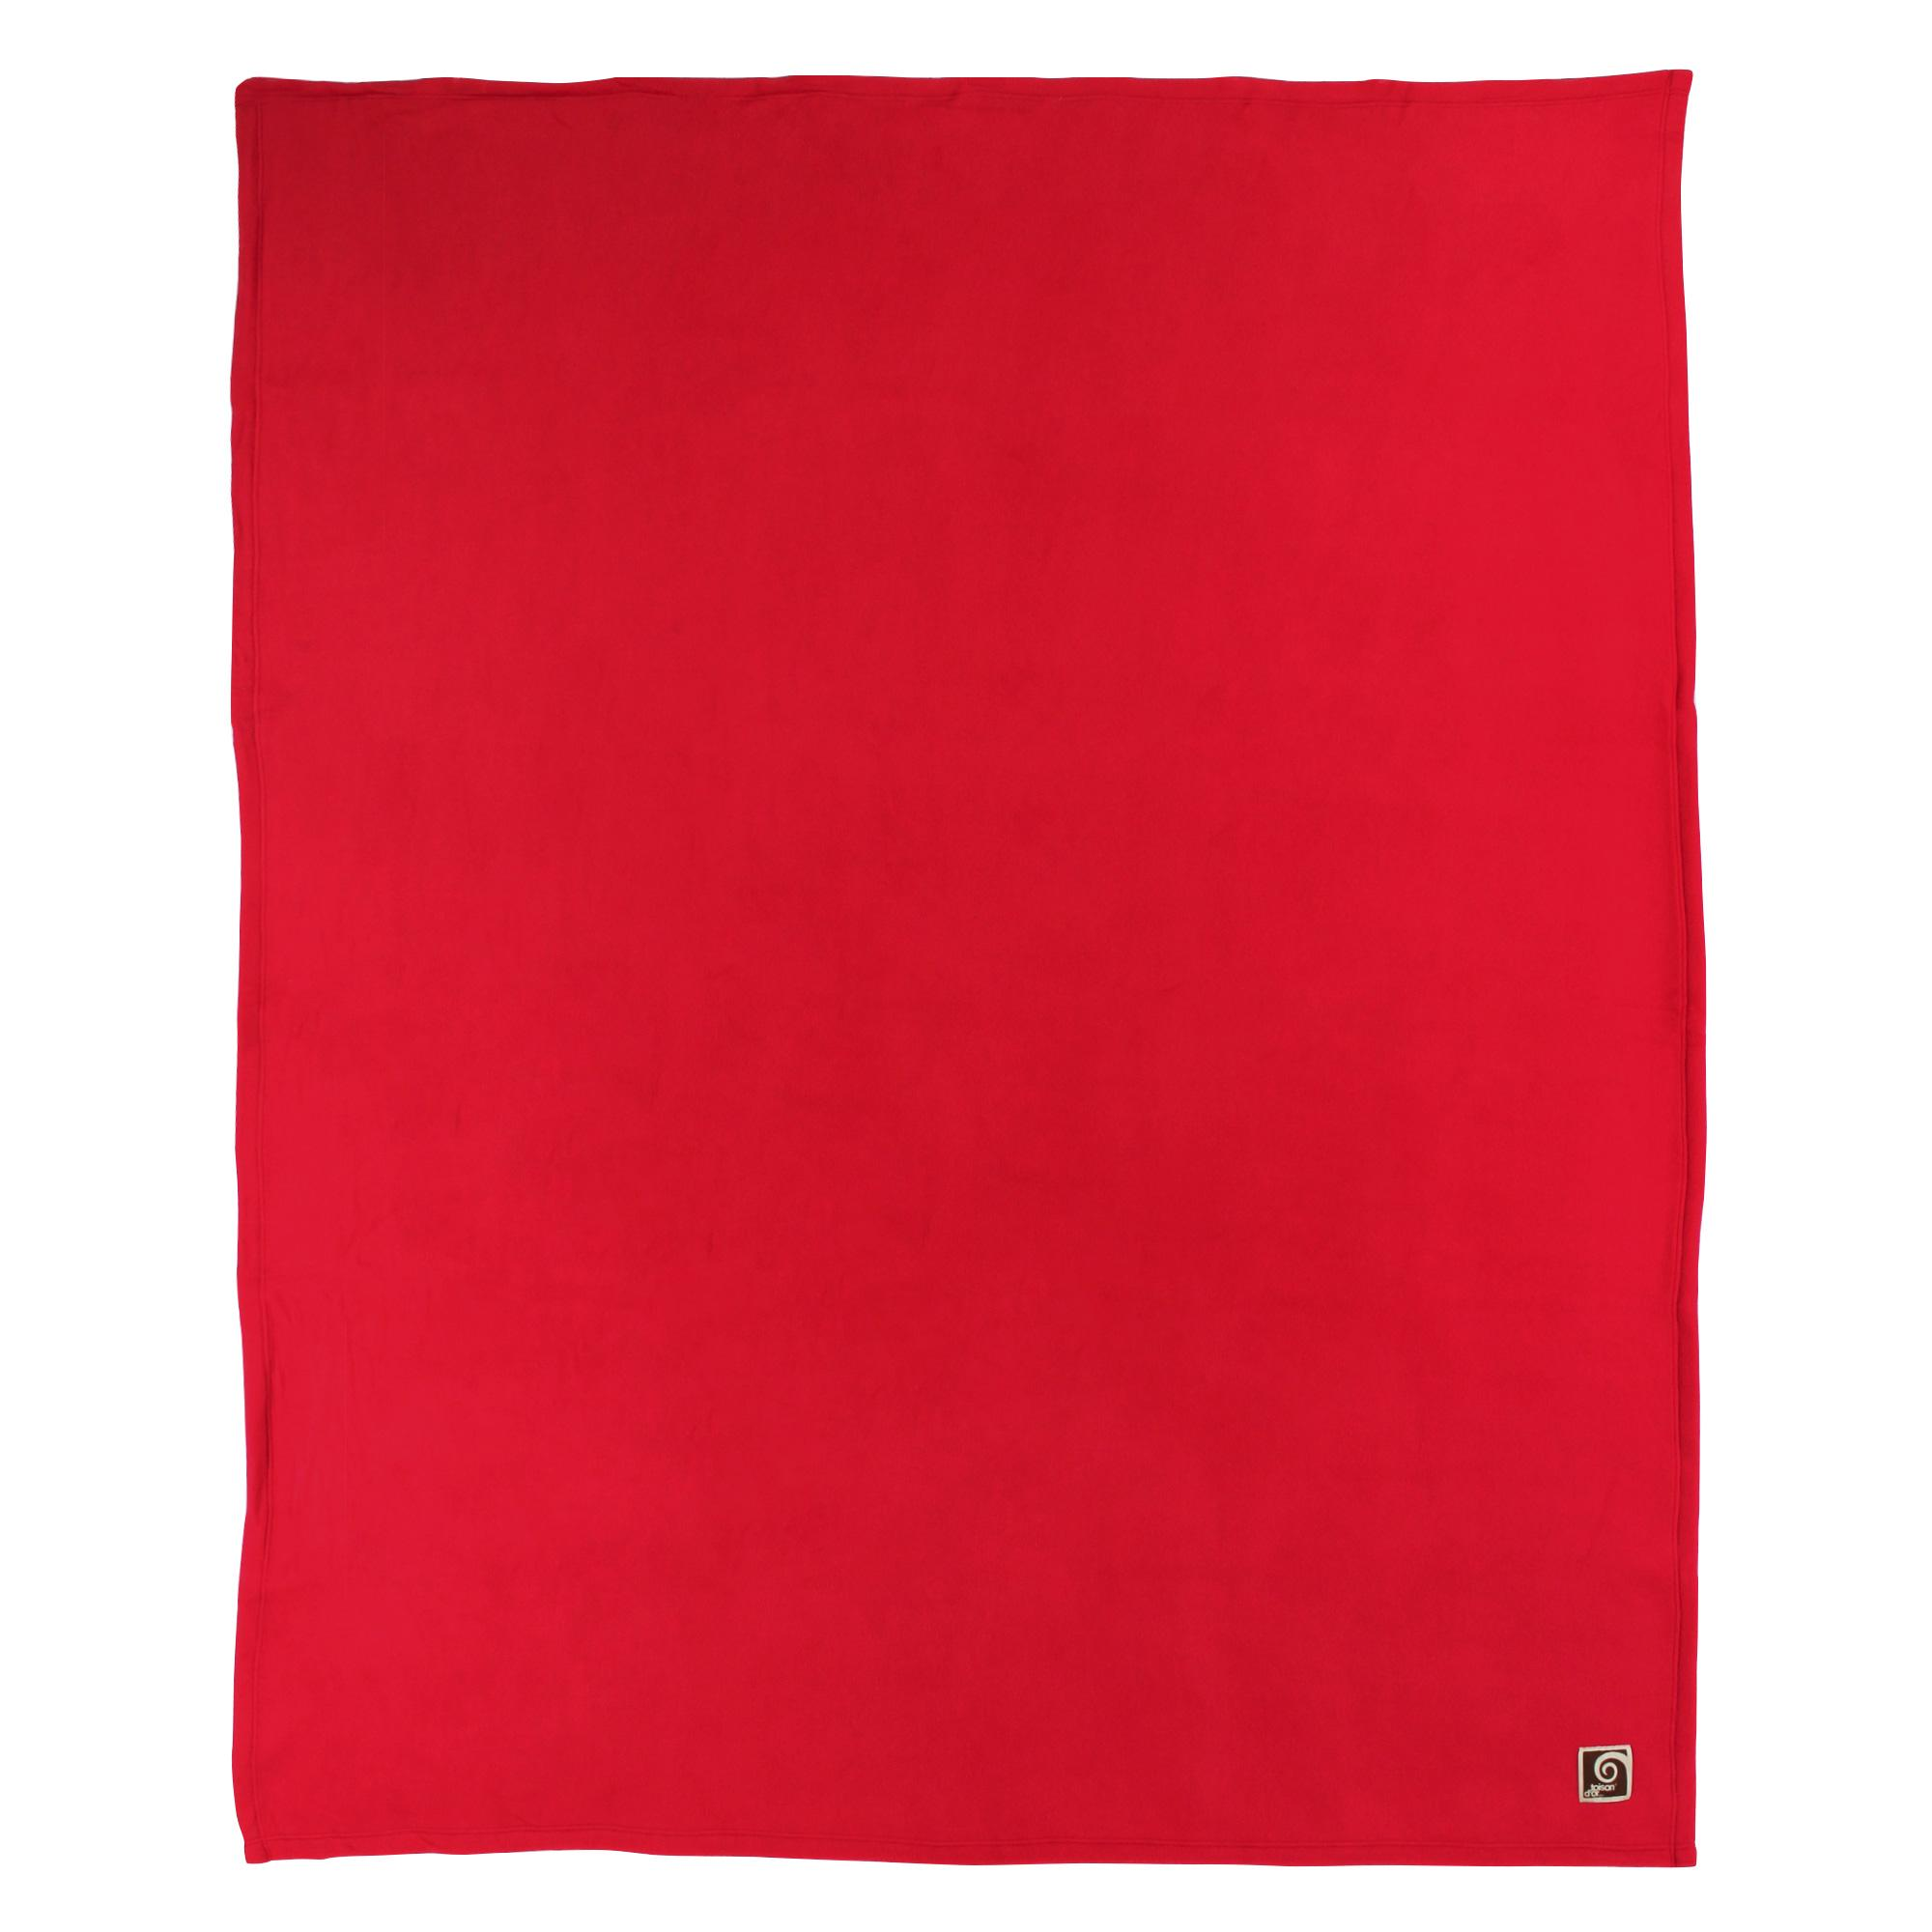 Couverture-polaire-240x260-cm-100-Polyester-350g-m2-TEDDY-Rouge-Cerise